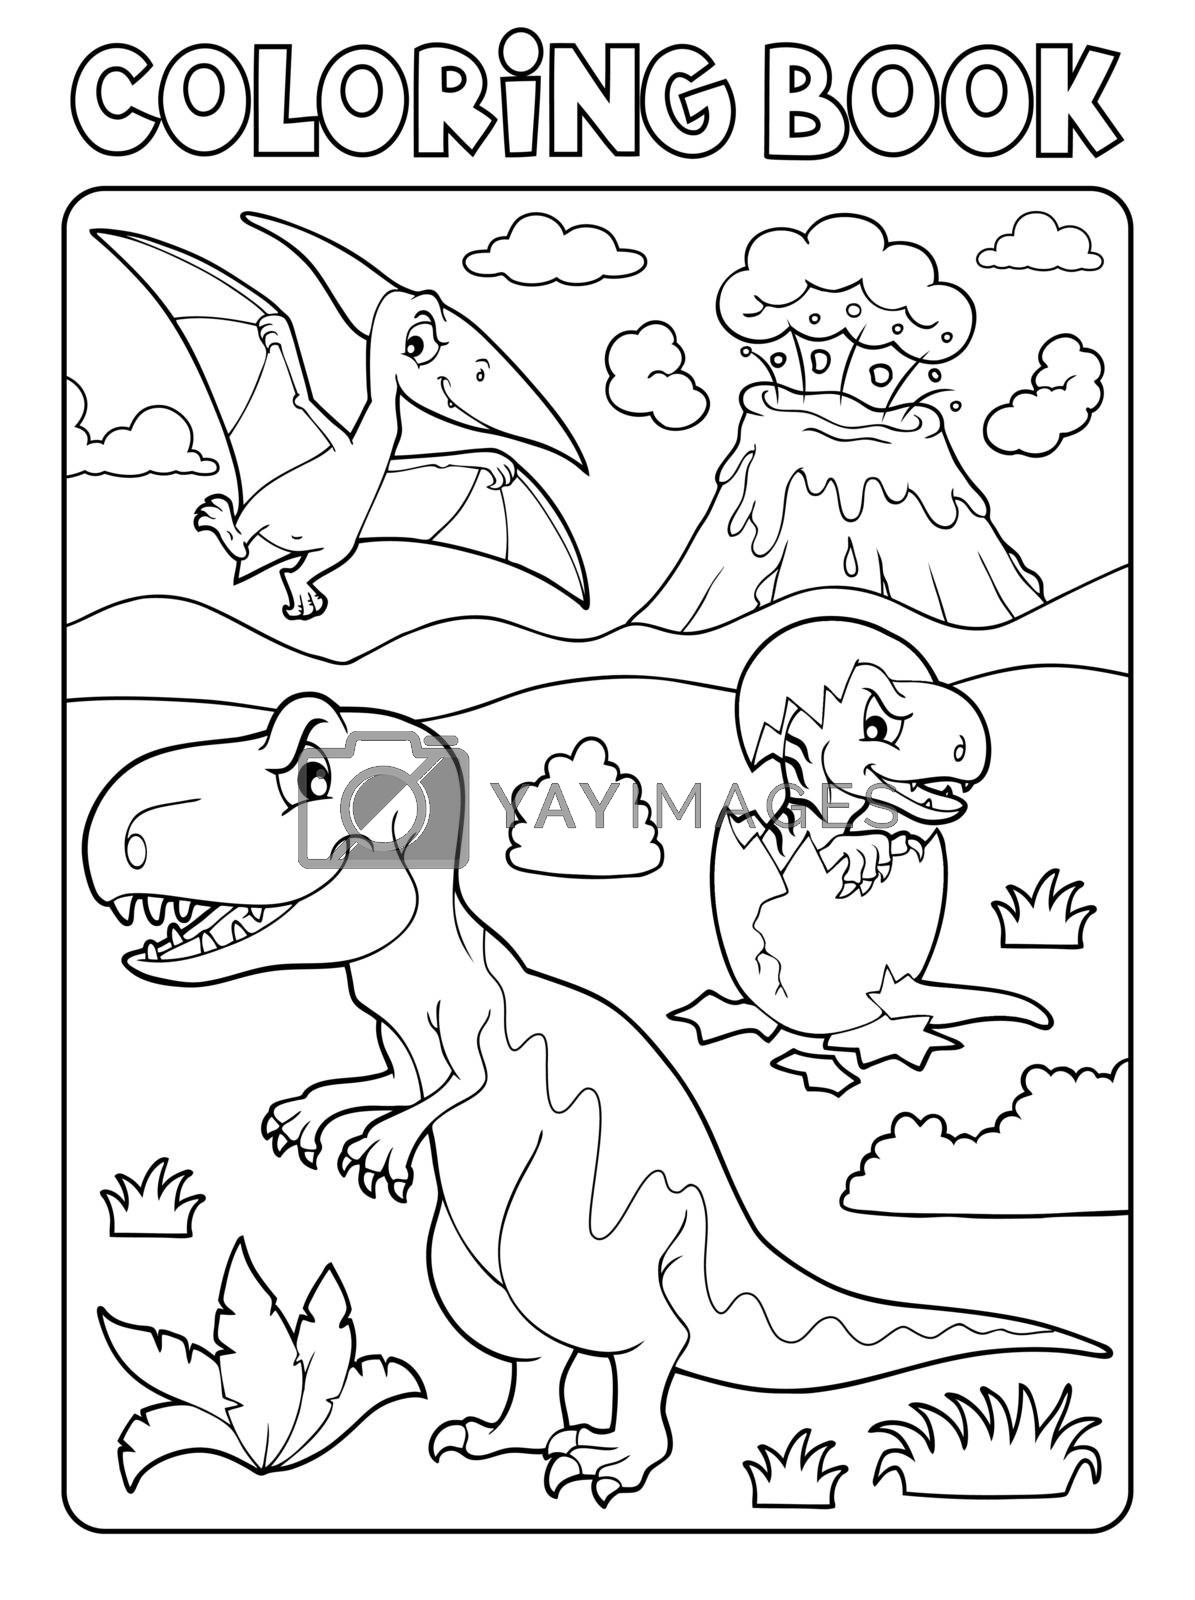 Coloring book dinosaur subject image 9 - eps10 vector illustration.